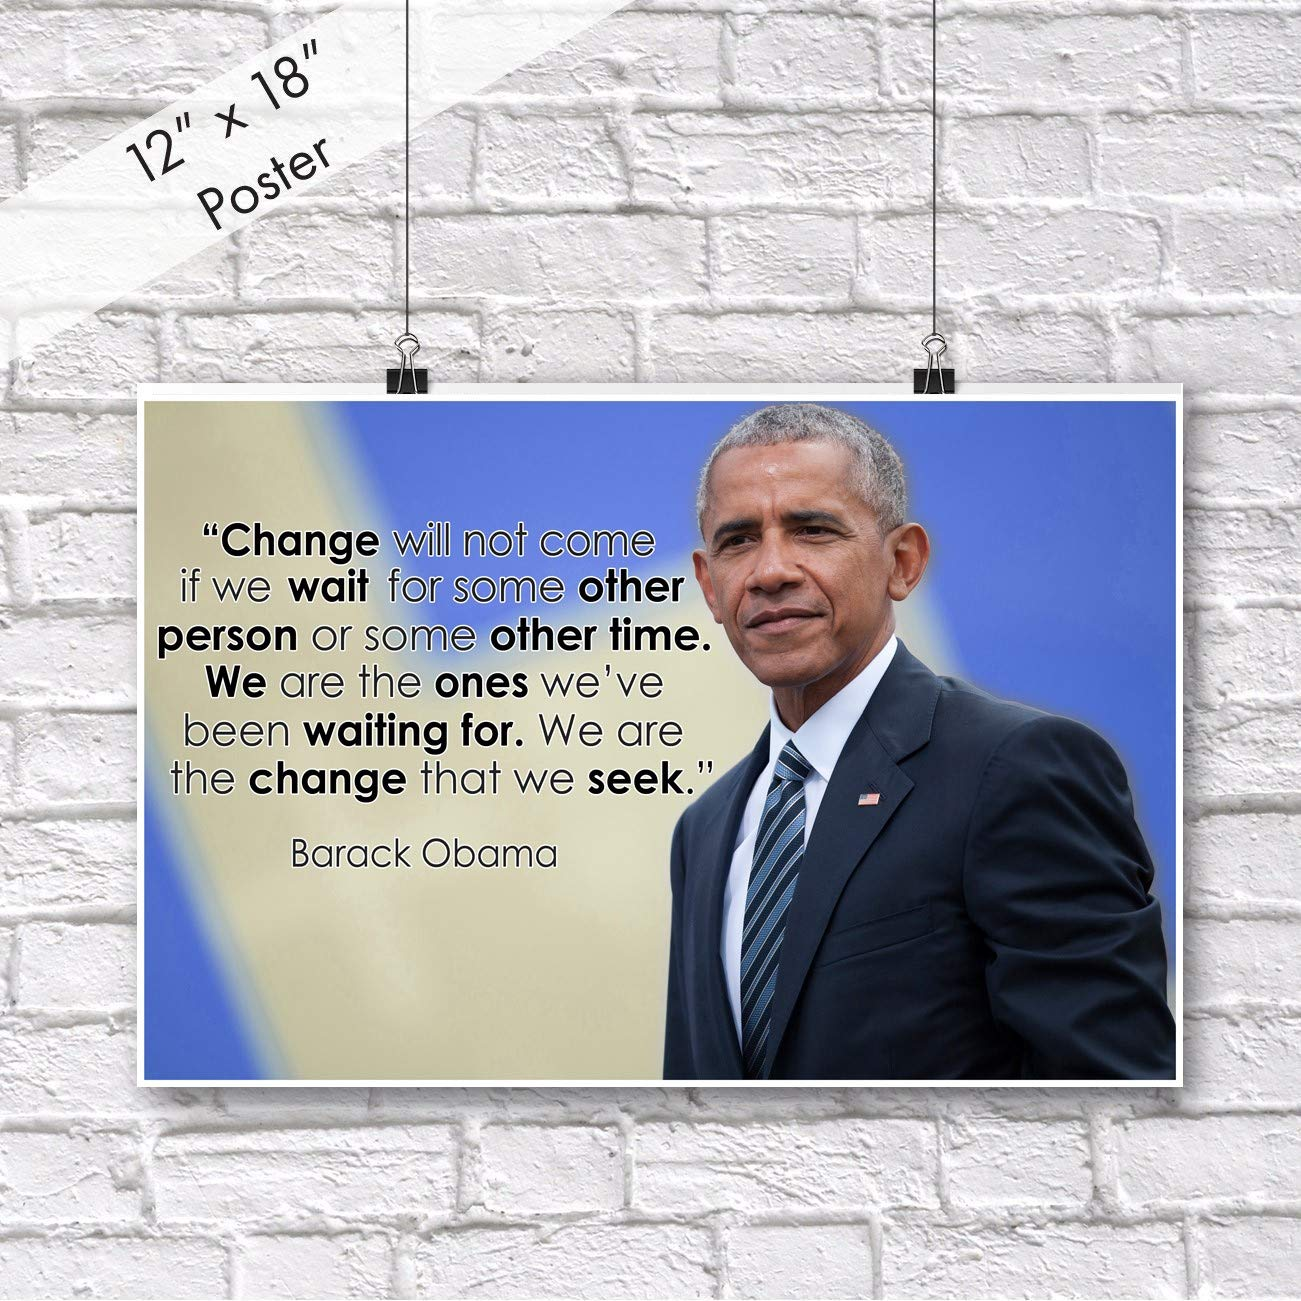 Barack Obama Quote Classroom Poster Black History Month Posters School Motivational Inspirational Wall Art Teacher Supplies Learning Teaching Positive Education Teachers Mindsets Decorations P021